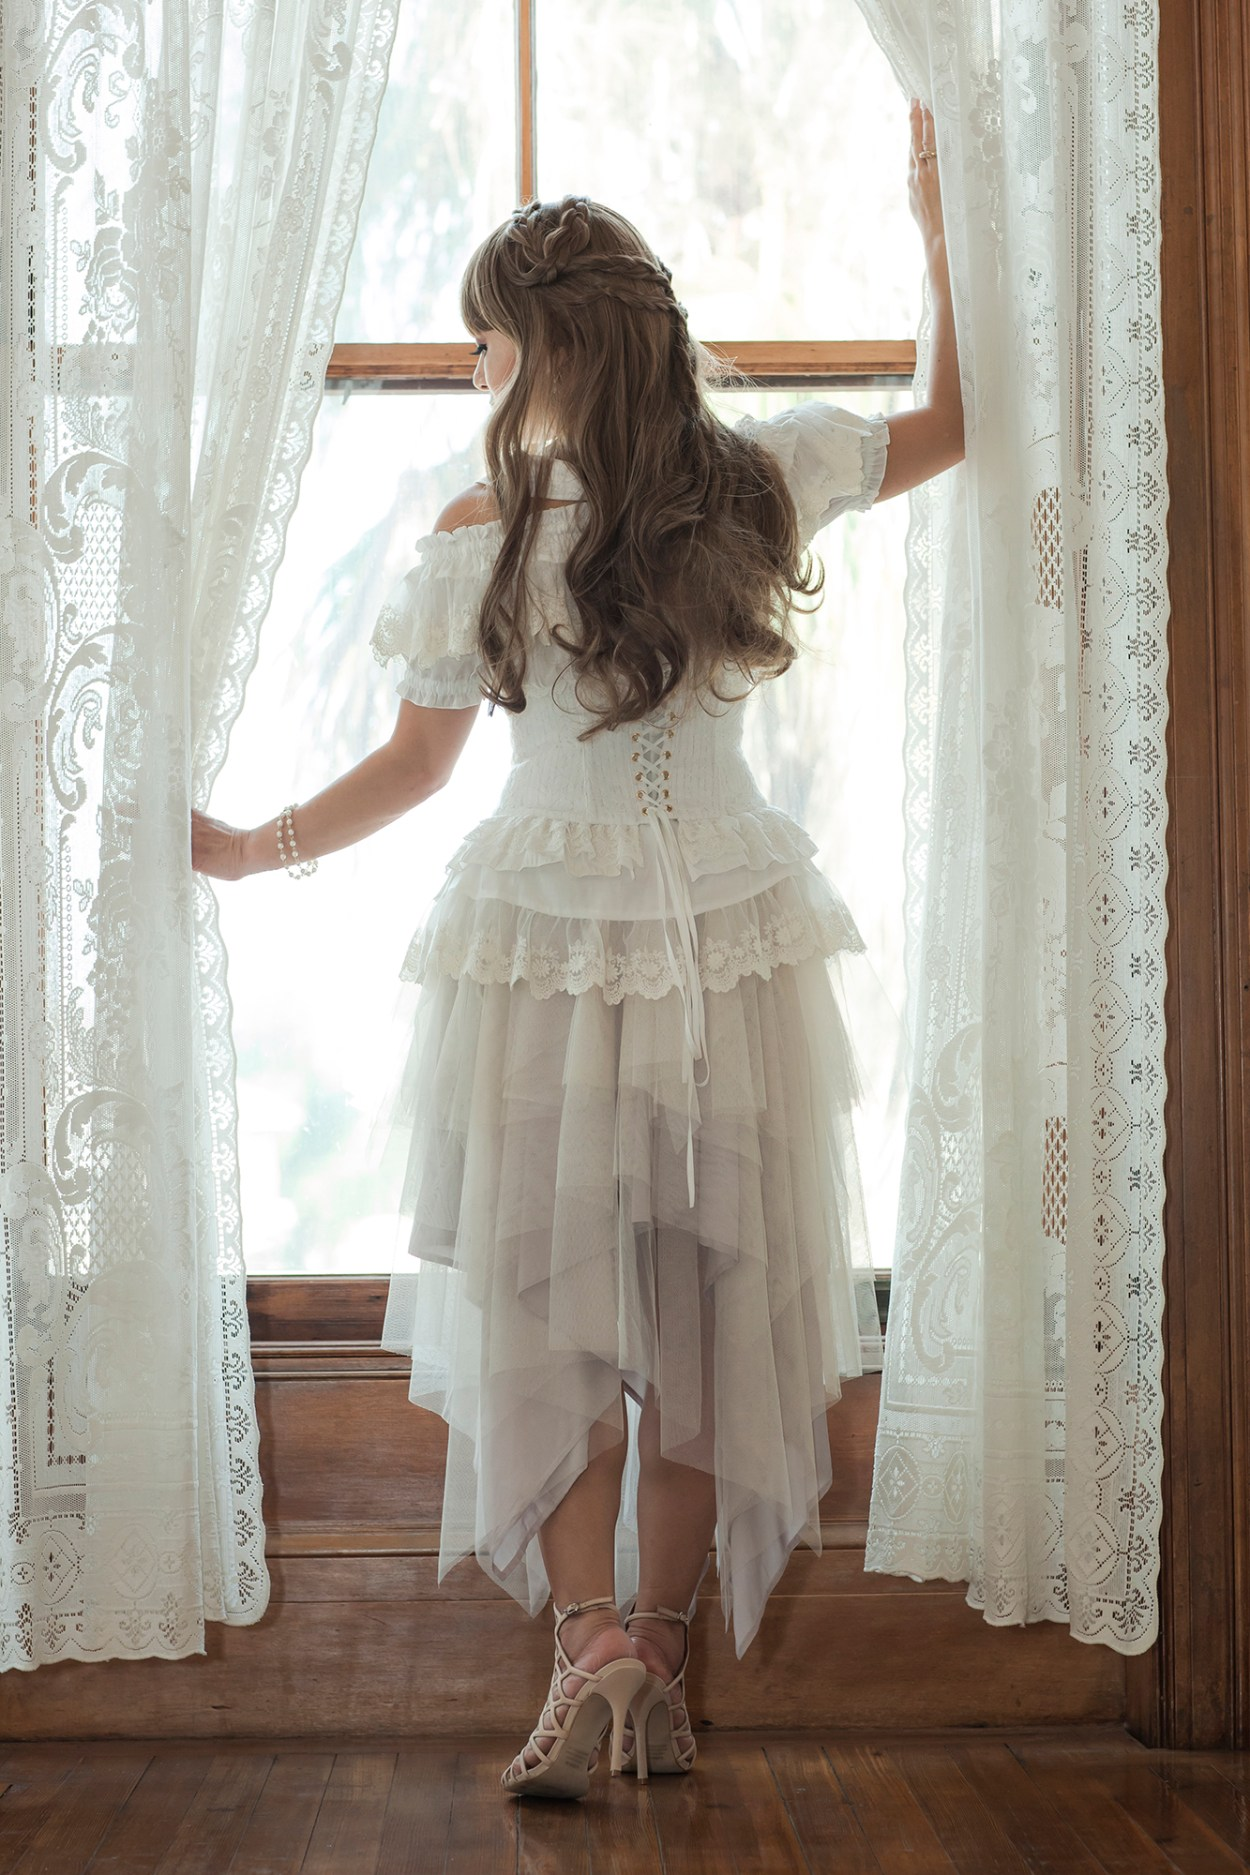 30-Sheglit-Ivory-Dress-Fashion-JFashion-Style-Victorian-Lolita-Moody